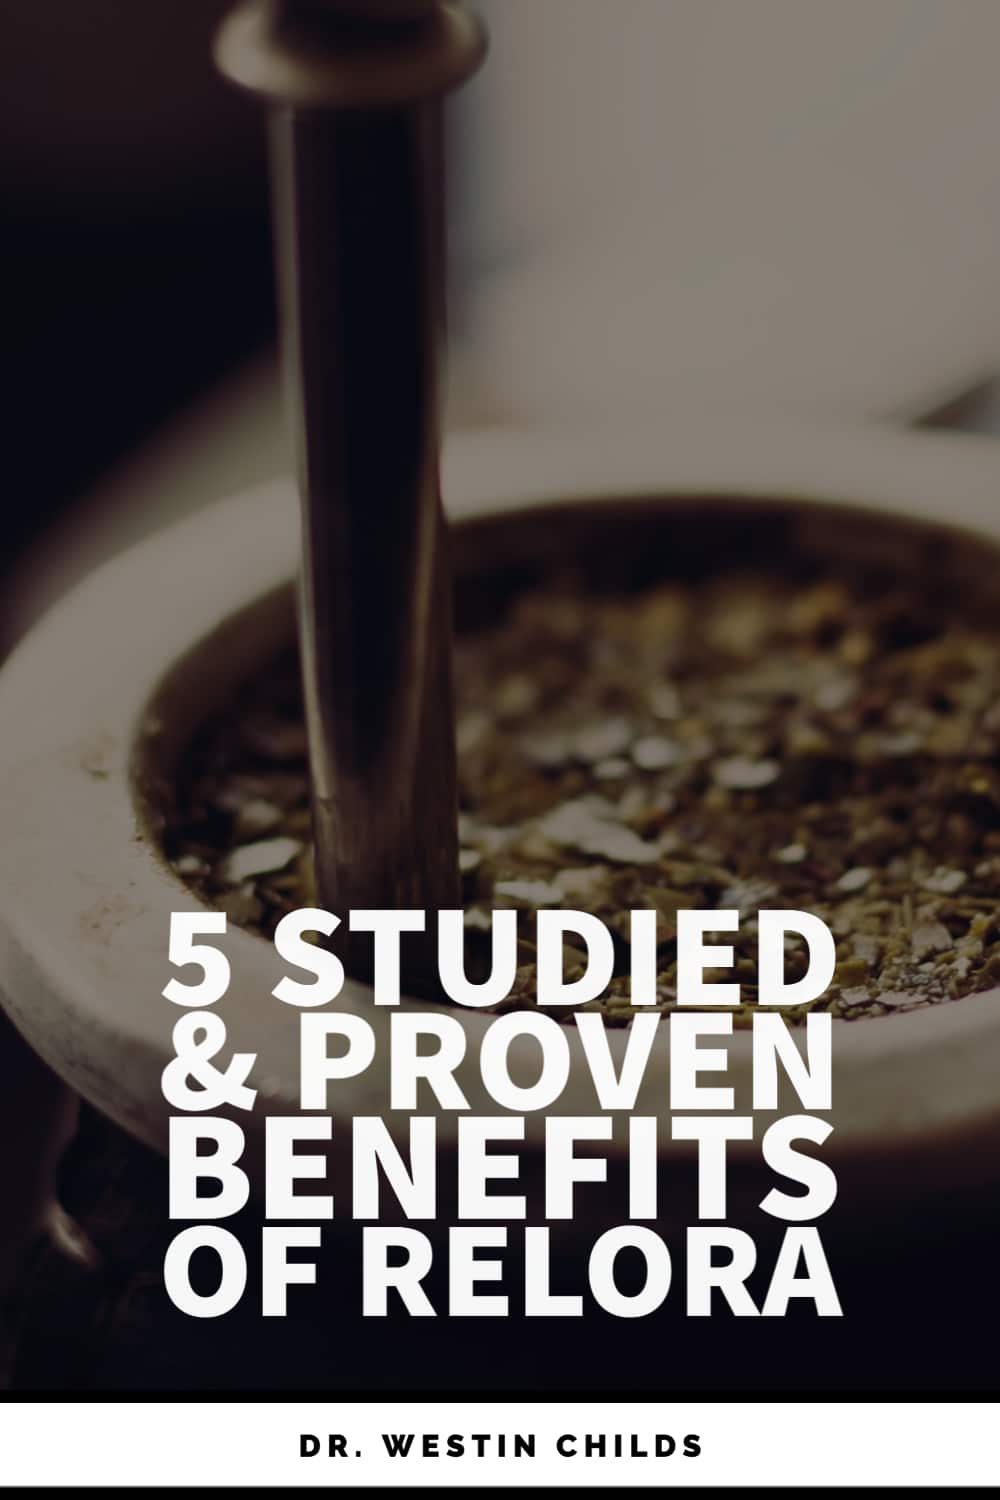 5 benefits of relora that you should know about